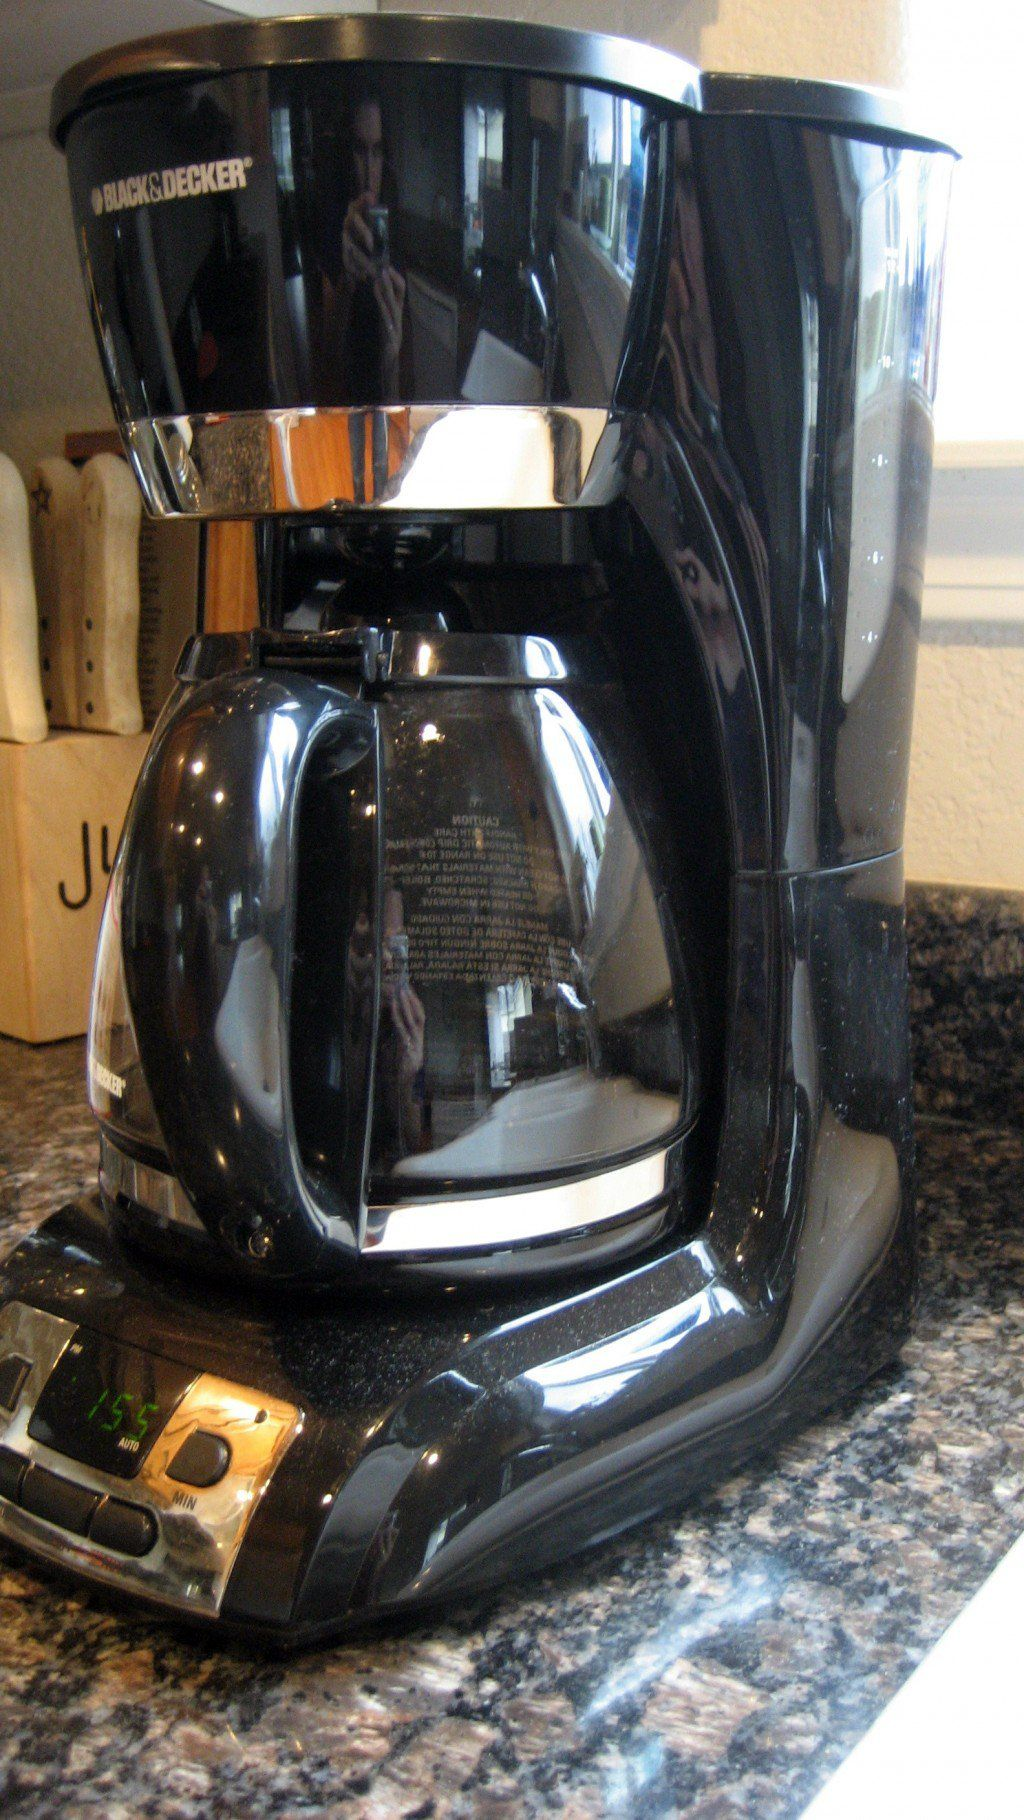 How to clean a coffee maker without vinegar with images